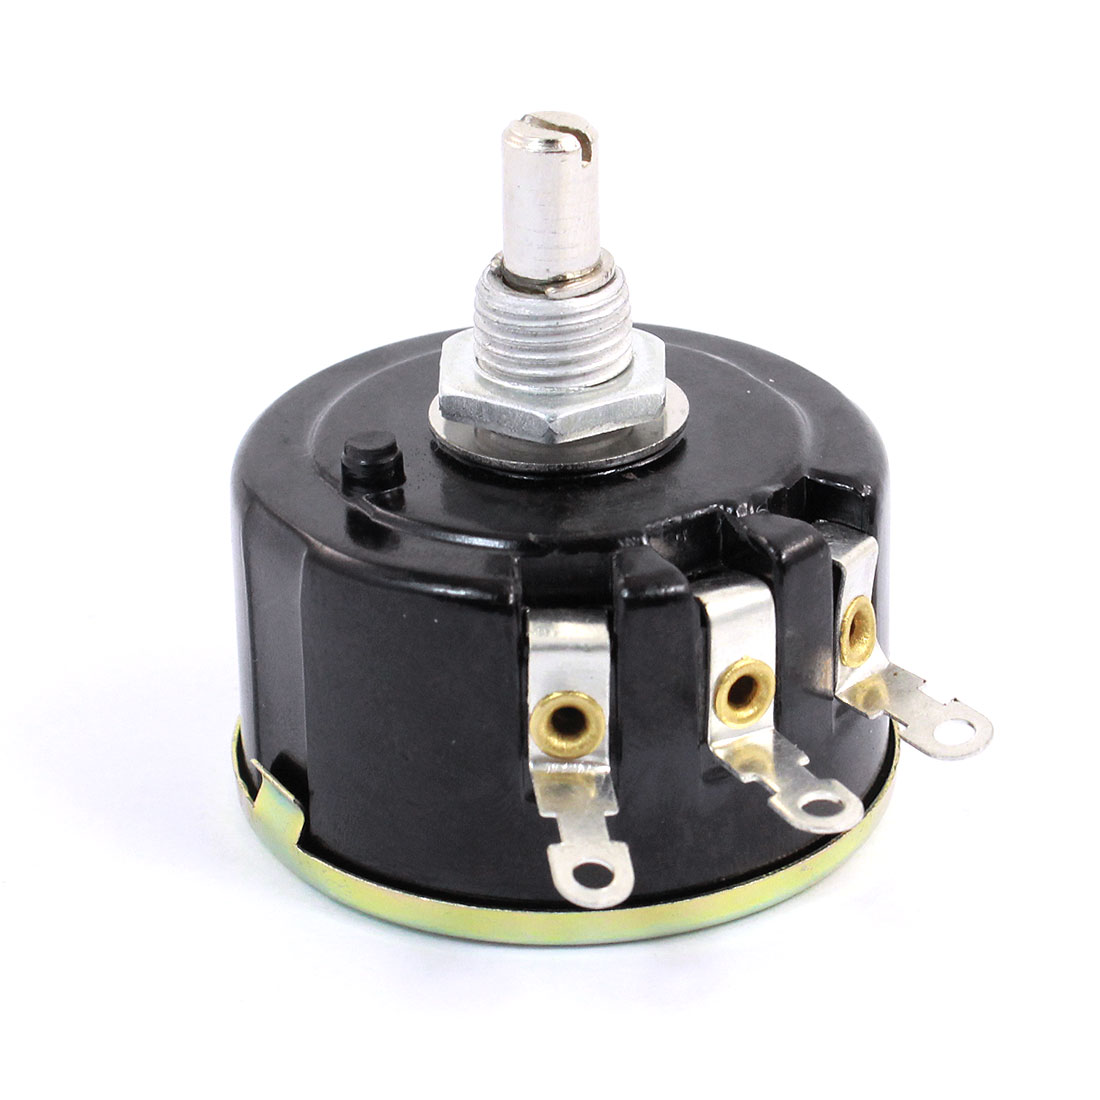 5W 10K Ohm Variable Resistor 3 Pin Wire Wound Potentiometer WX112(050)